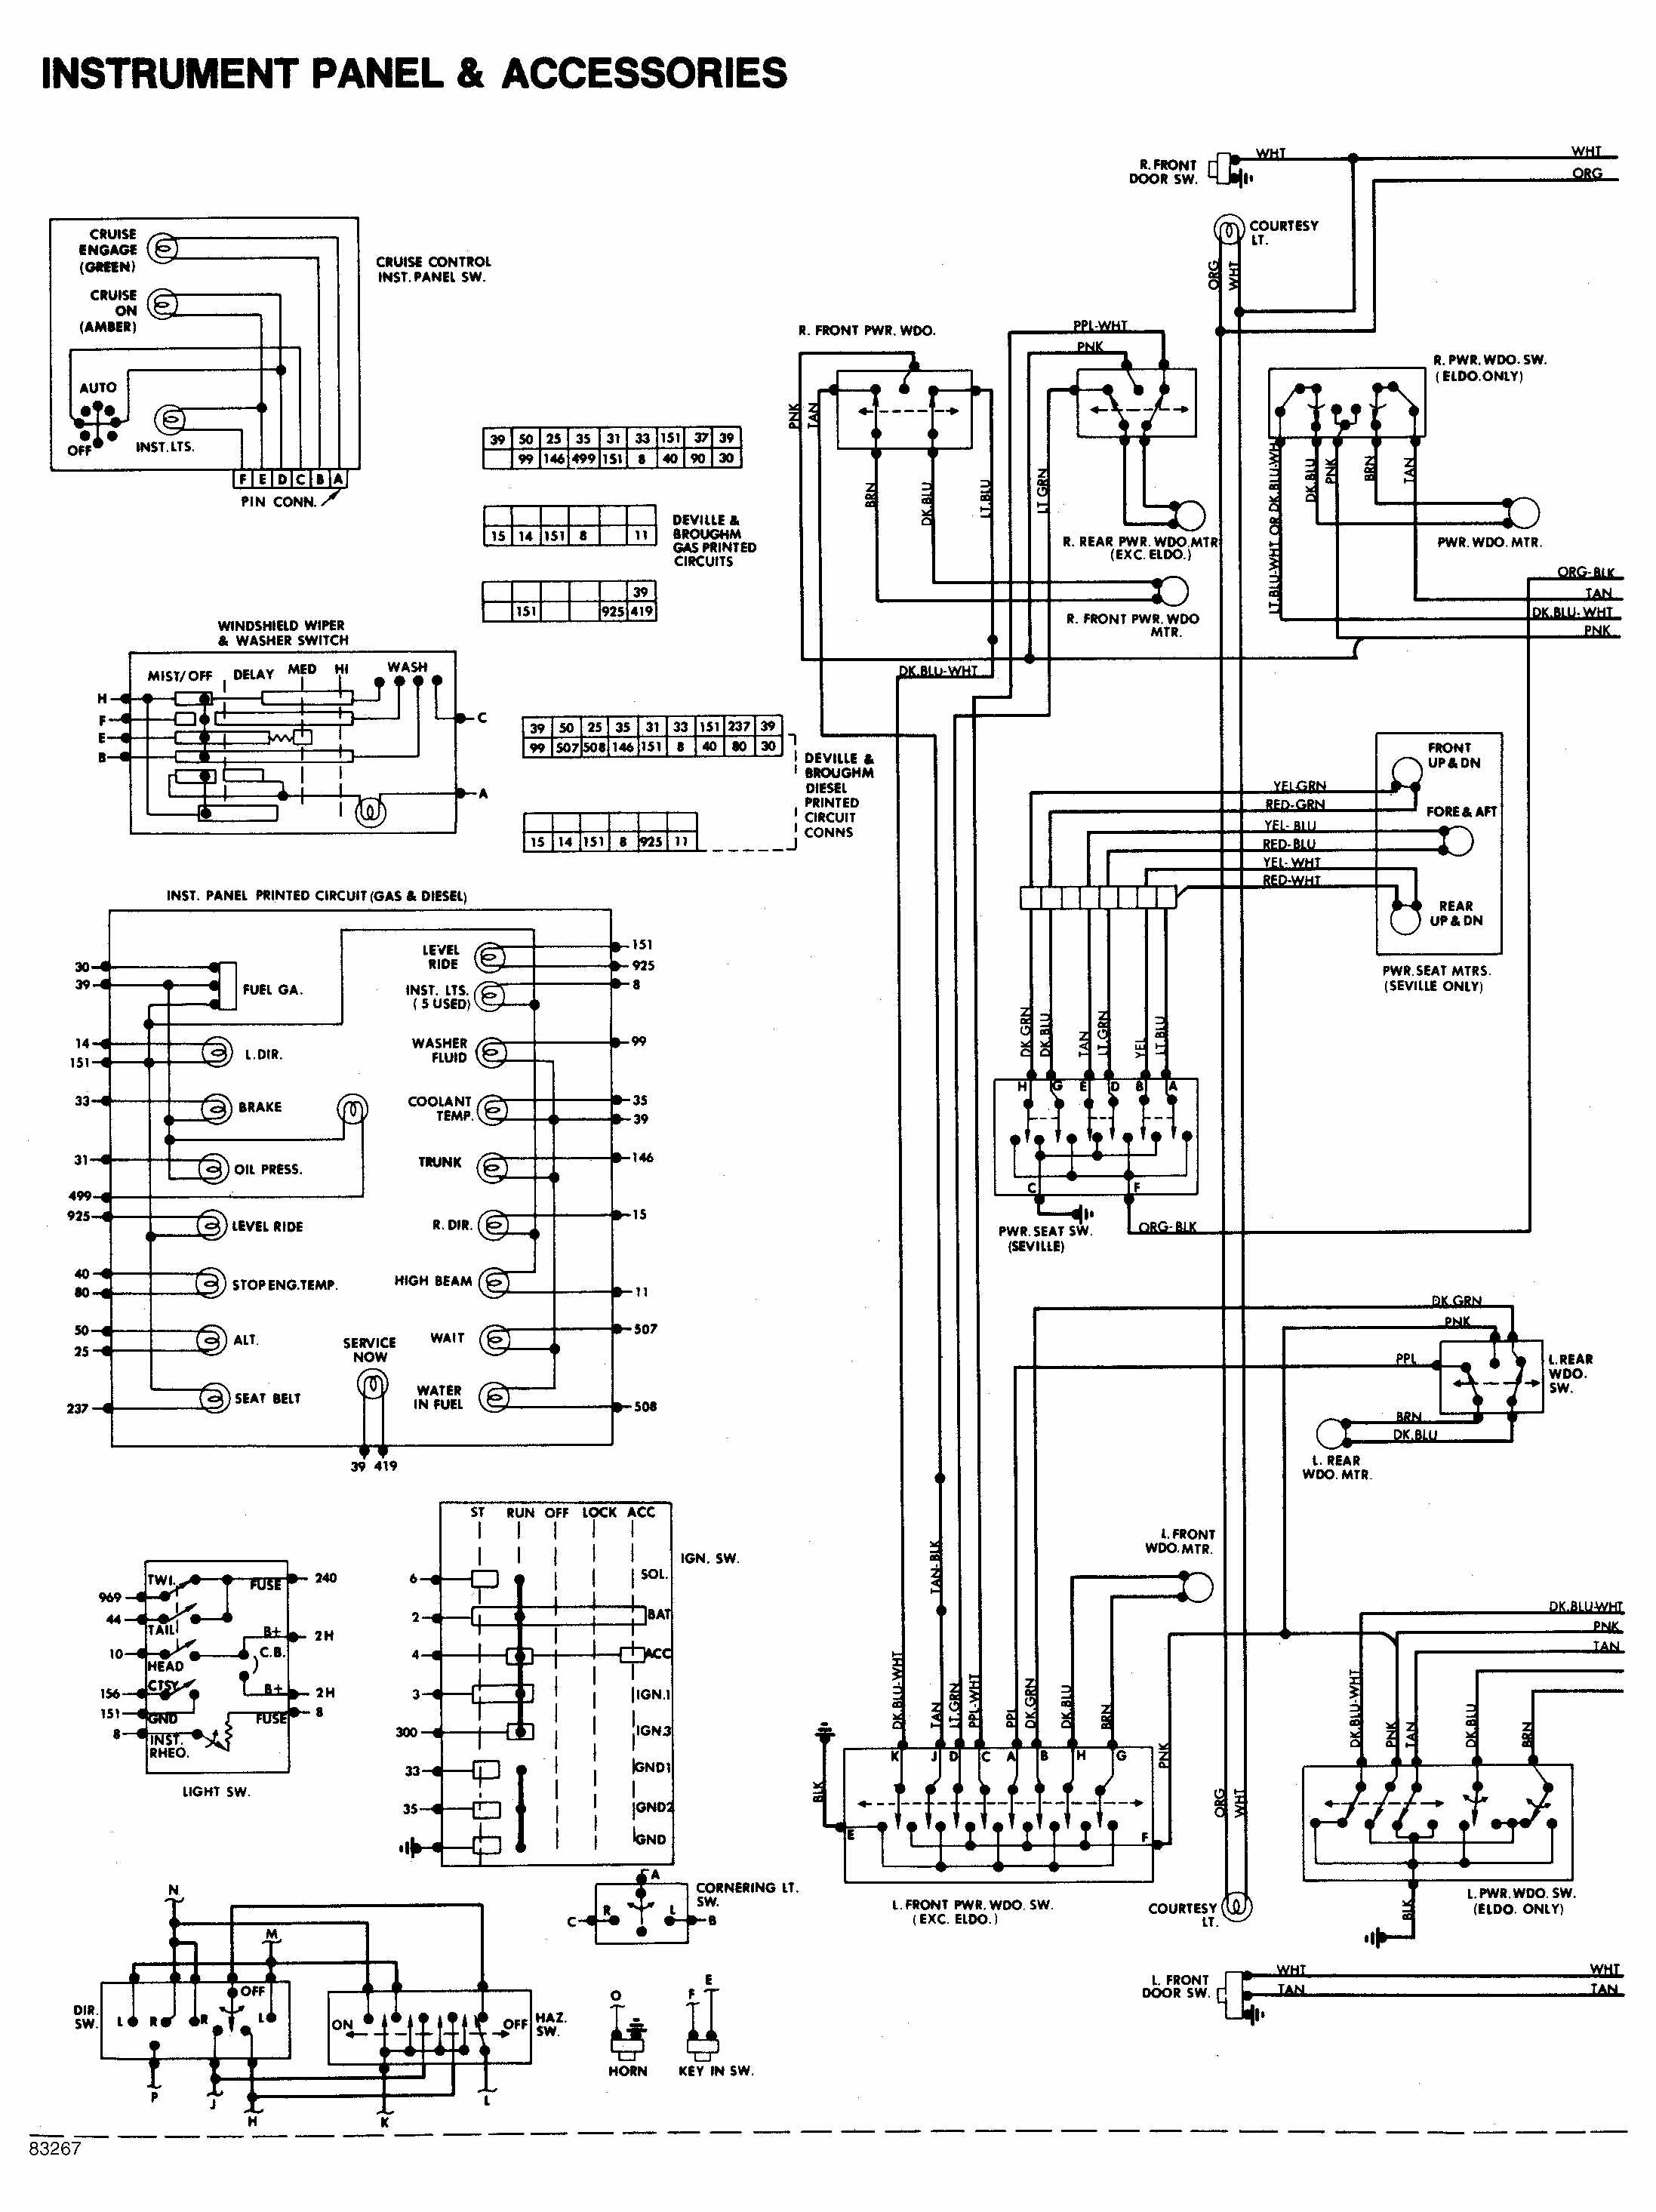 instrument panel and accessories wiring diagram of 1984 cadillac deville 1959 chevy instrument panel wiring diagram wiring diagram data